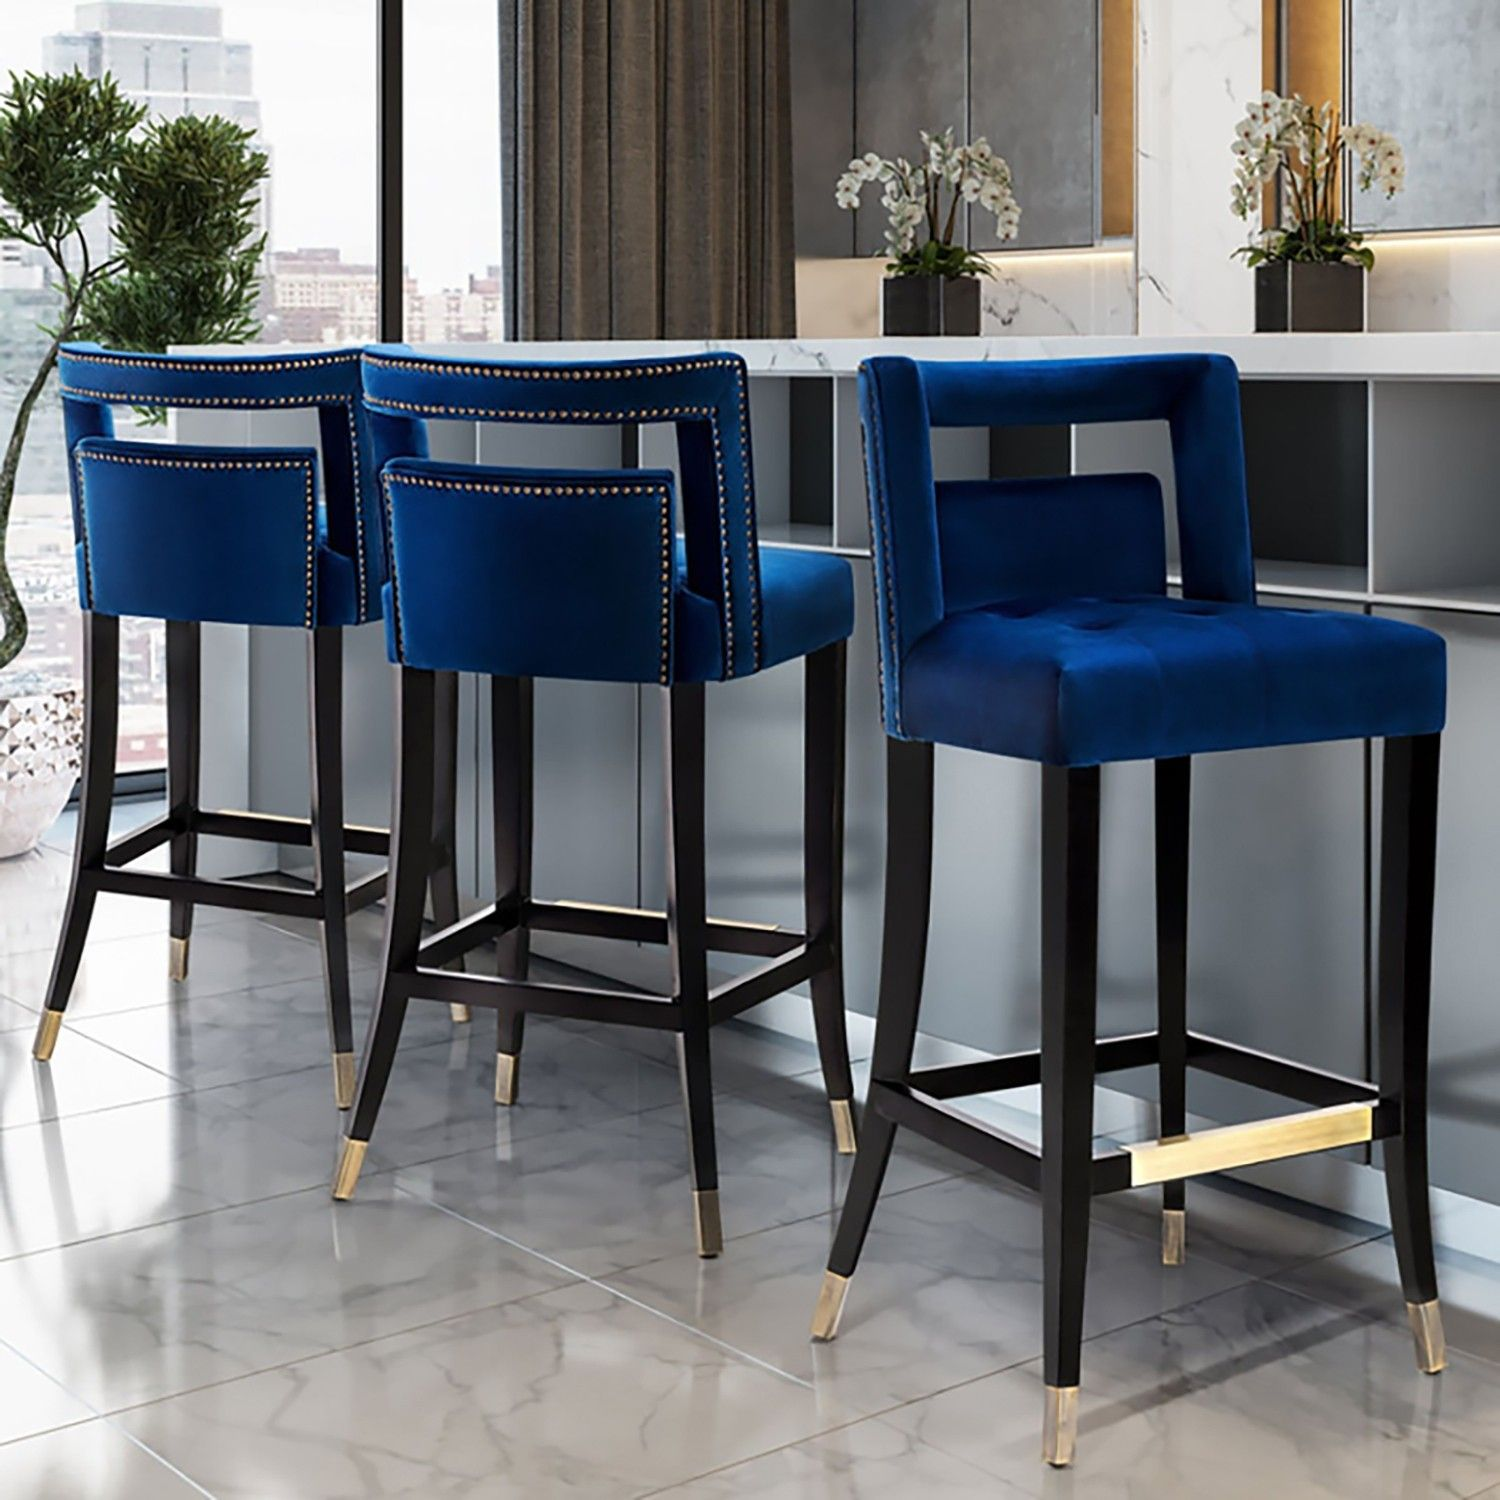 341 Ea Hart Stool Is Available In Bar And Counter Height